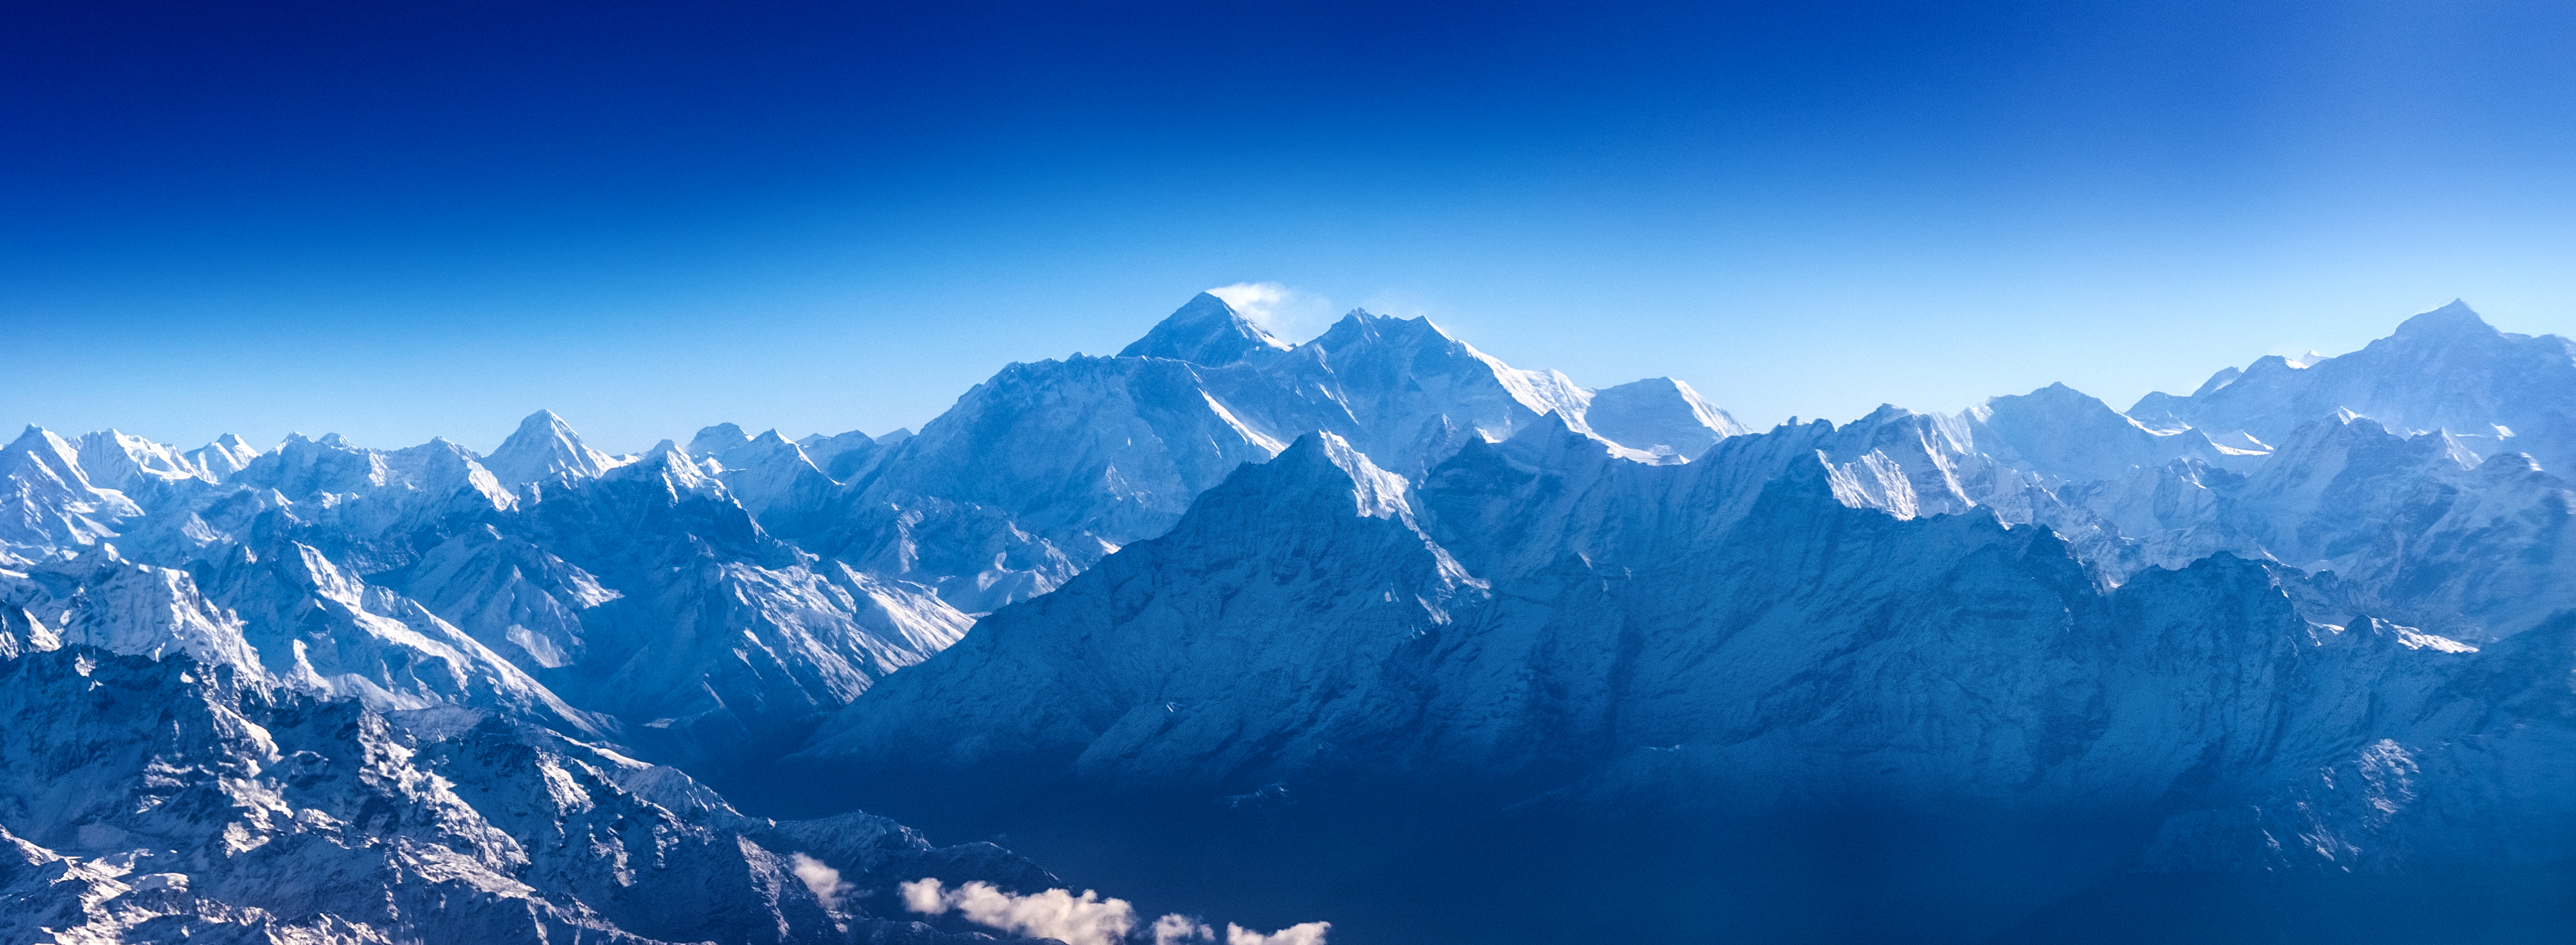 Panoramic view of Himalayas with Mount Everest in Sagarmatha National Park, Nepal